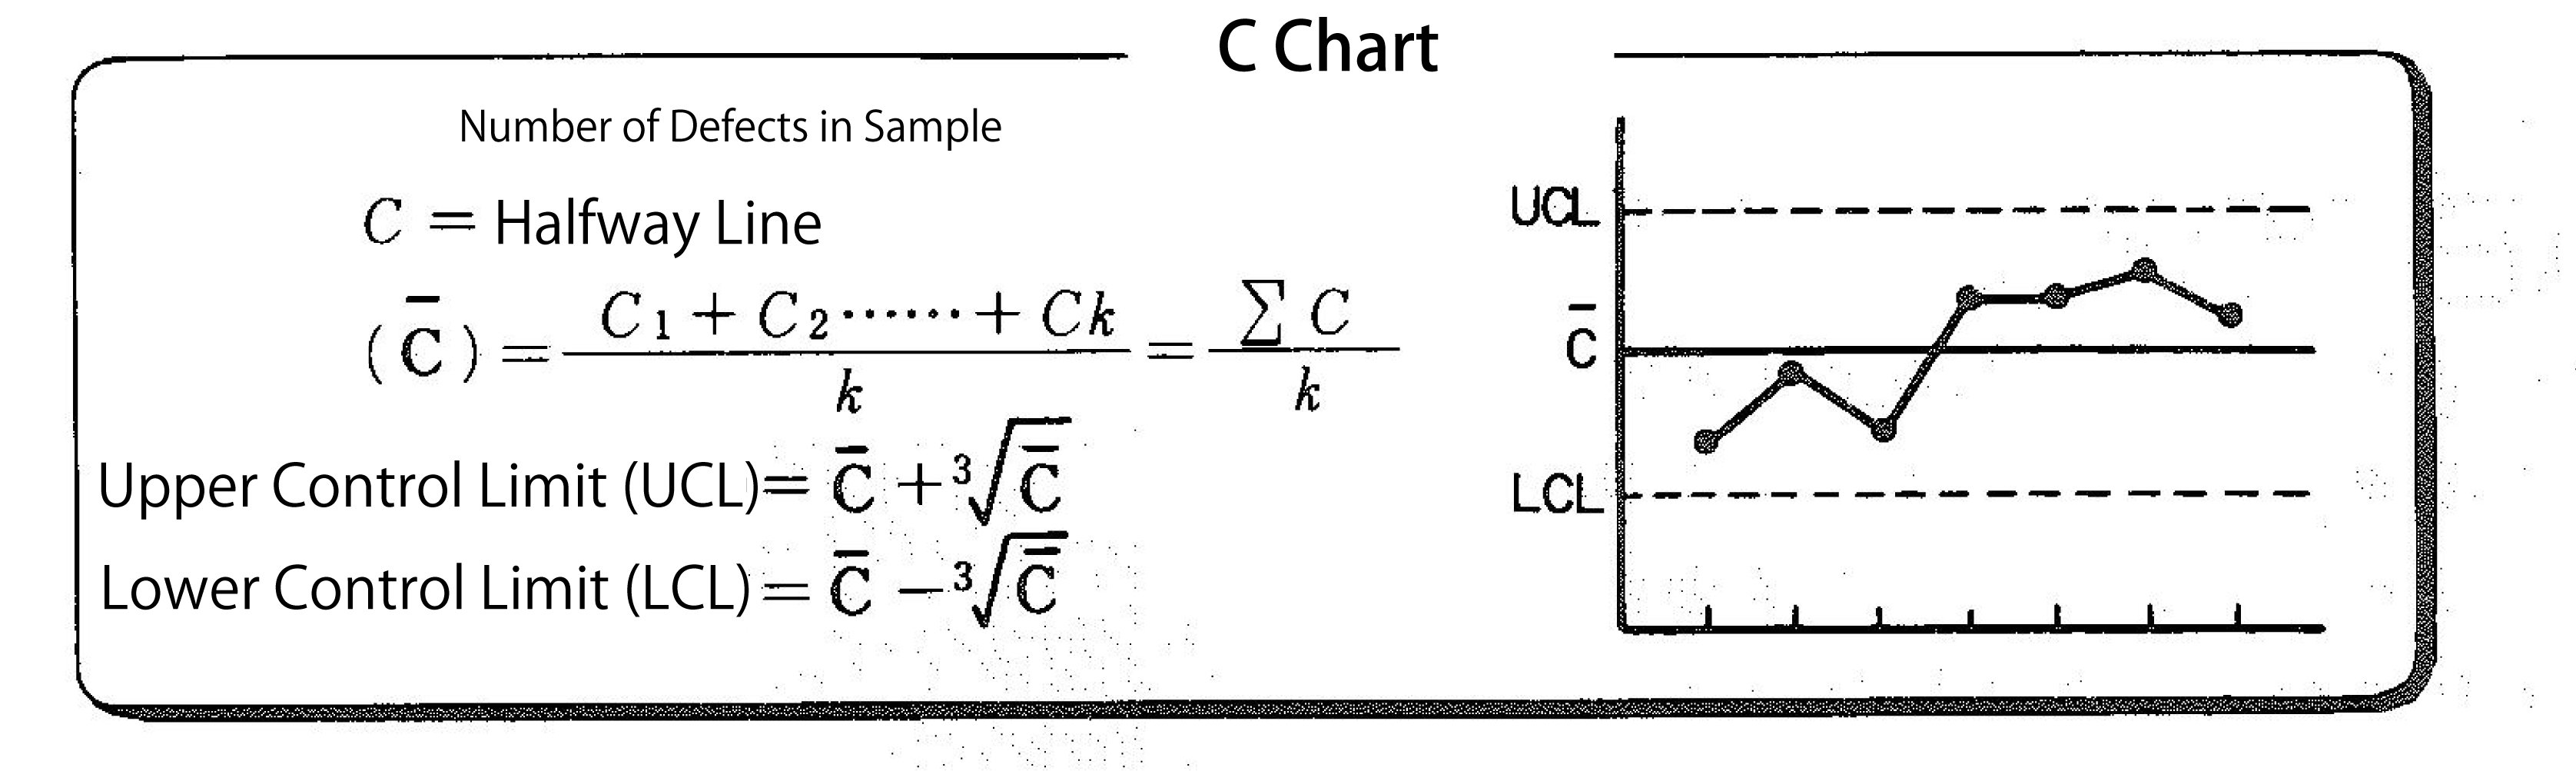 C Chart - Quality Control - MRP glossary of Production